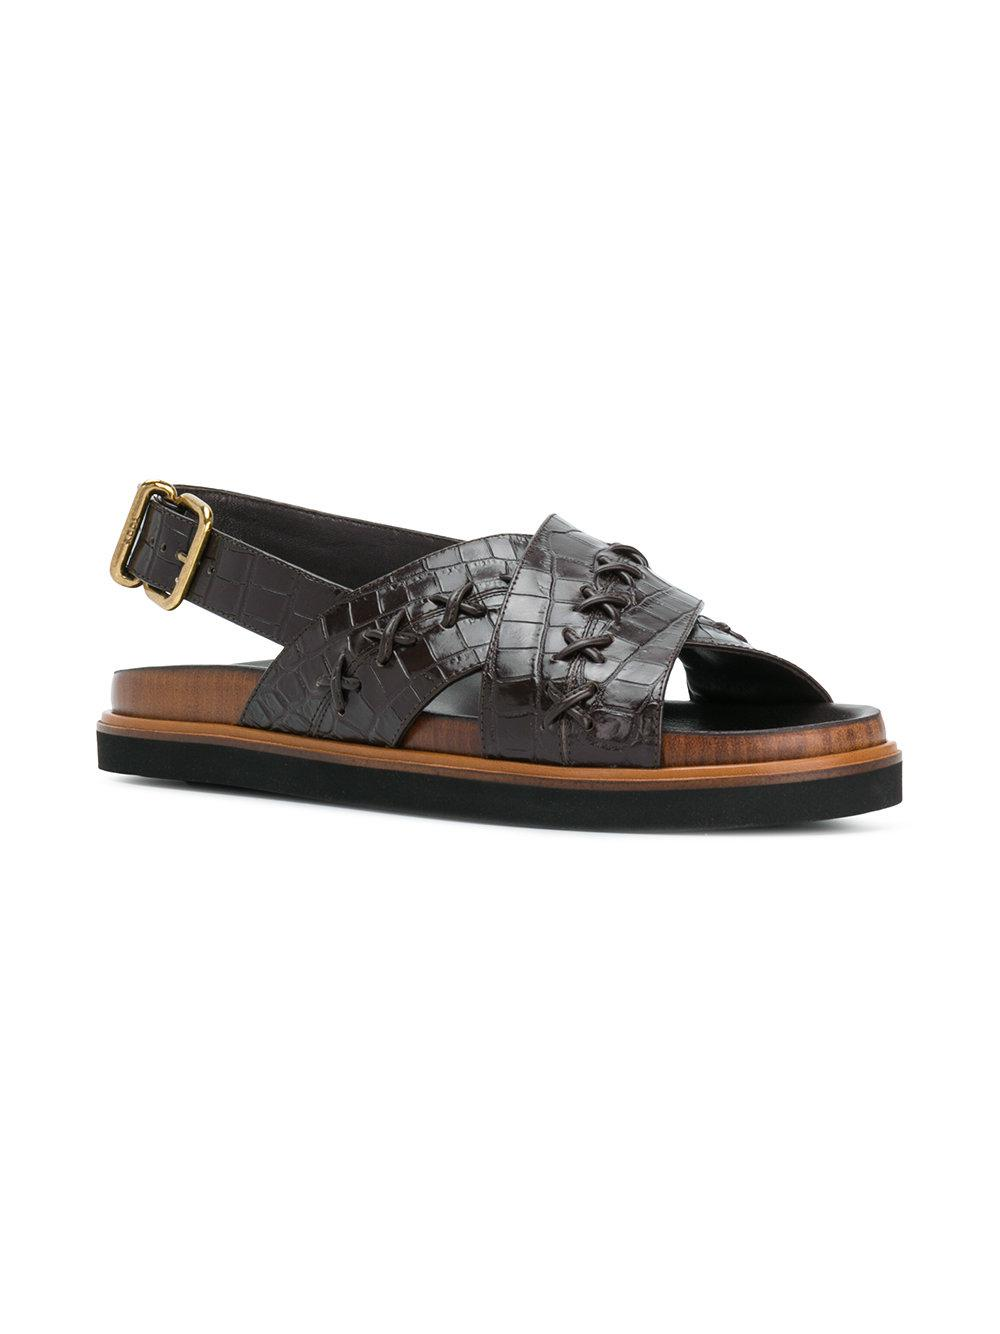 Tod's Leather Crossover Slide Sandals buy cheap excellent W2oZ2